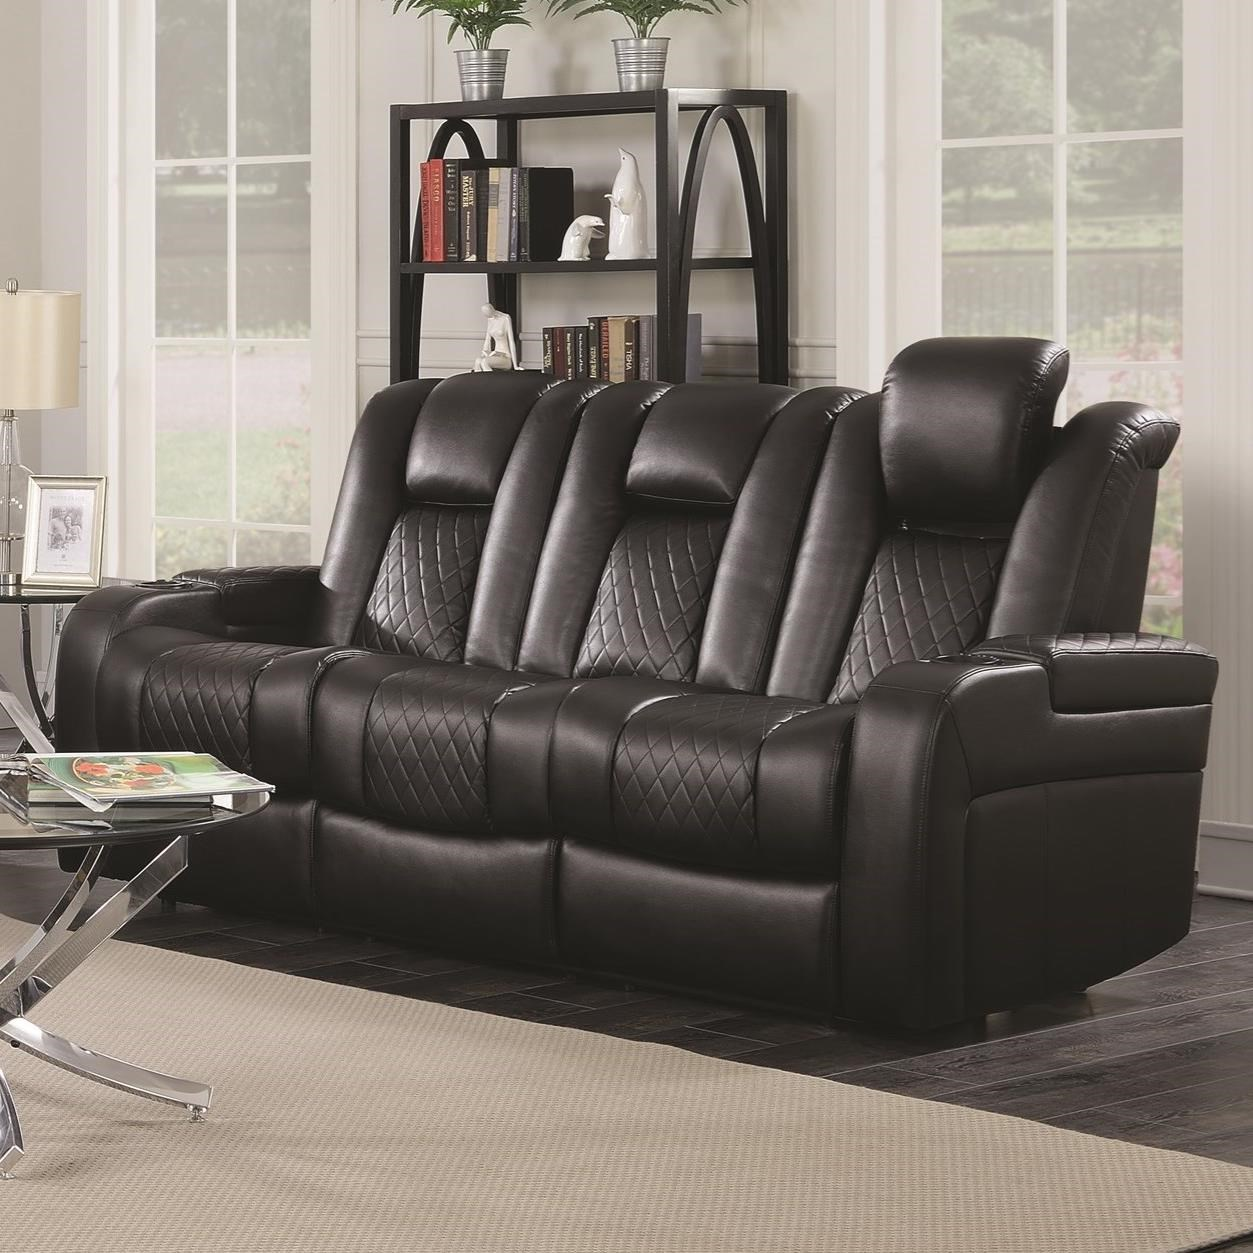 p options image reclining w living woptions leather black room sofa bonded recliner